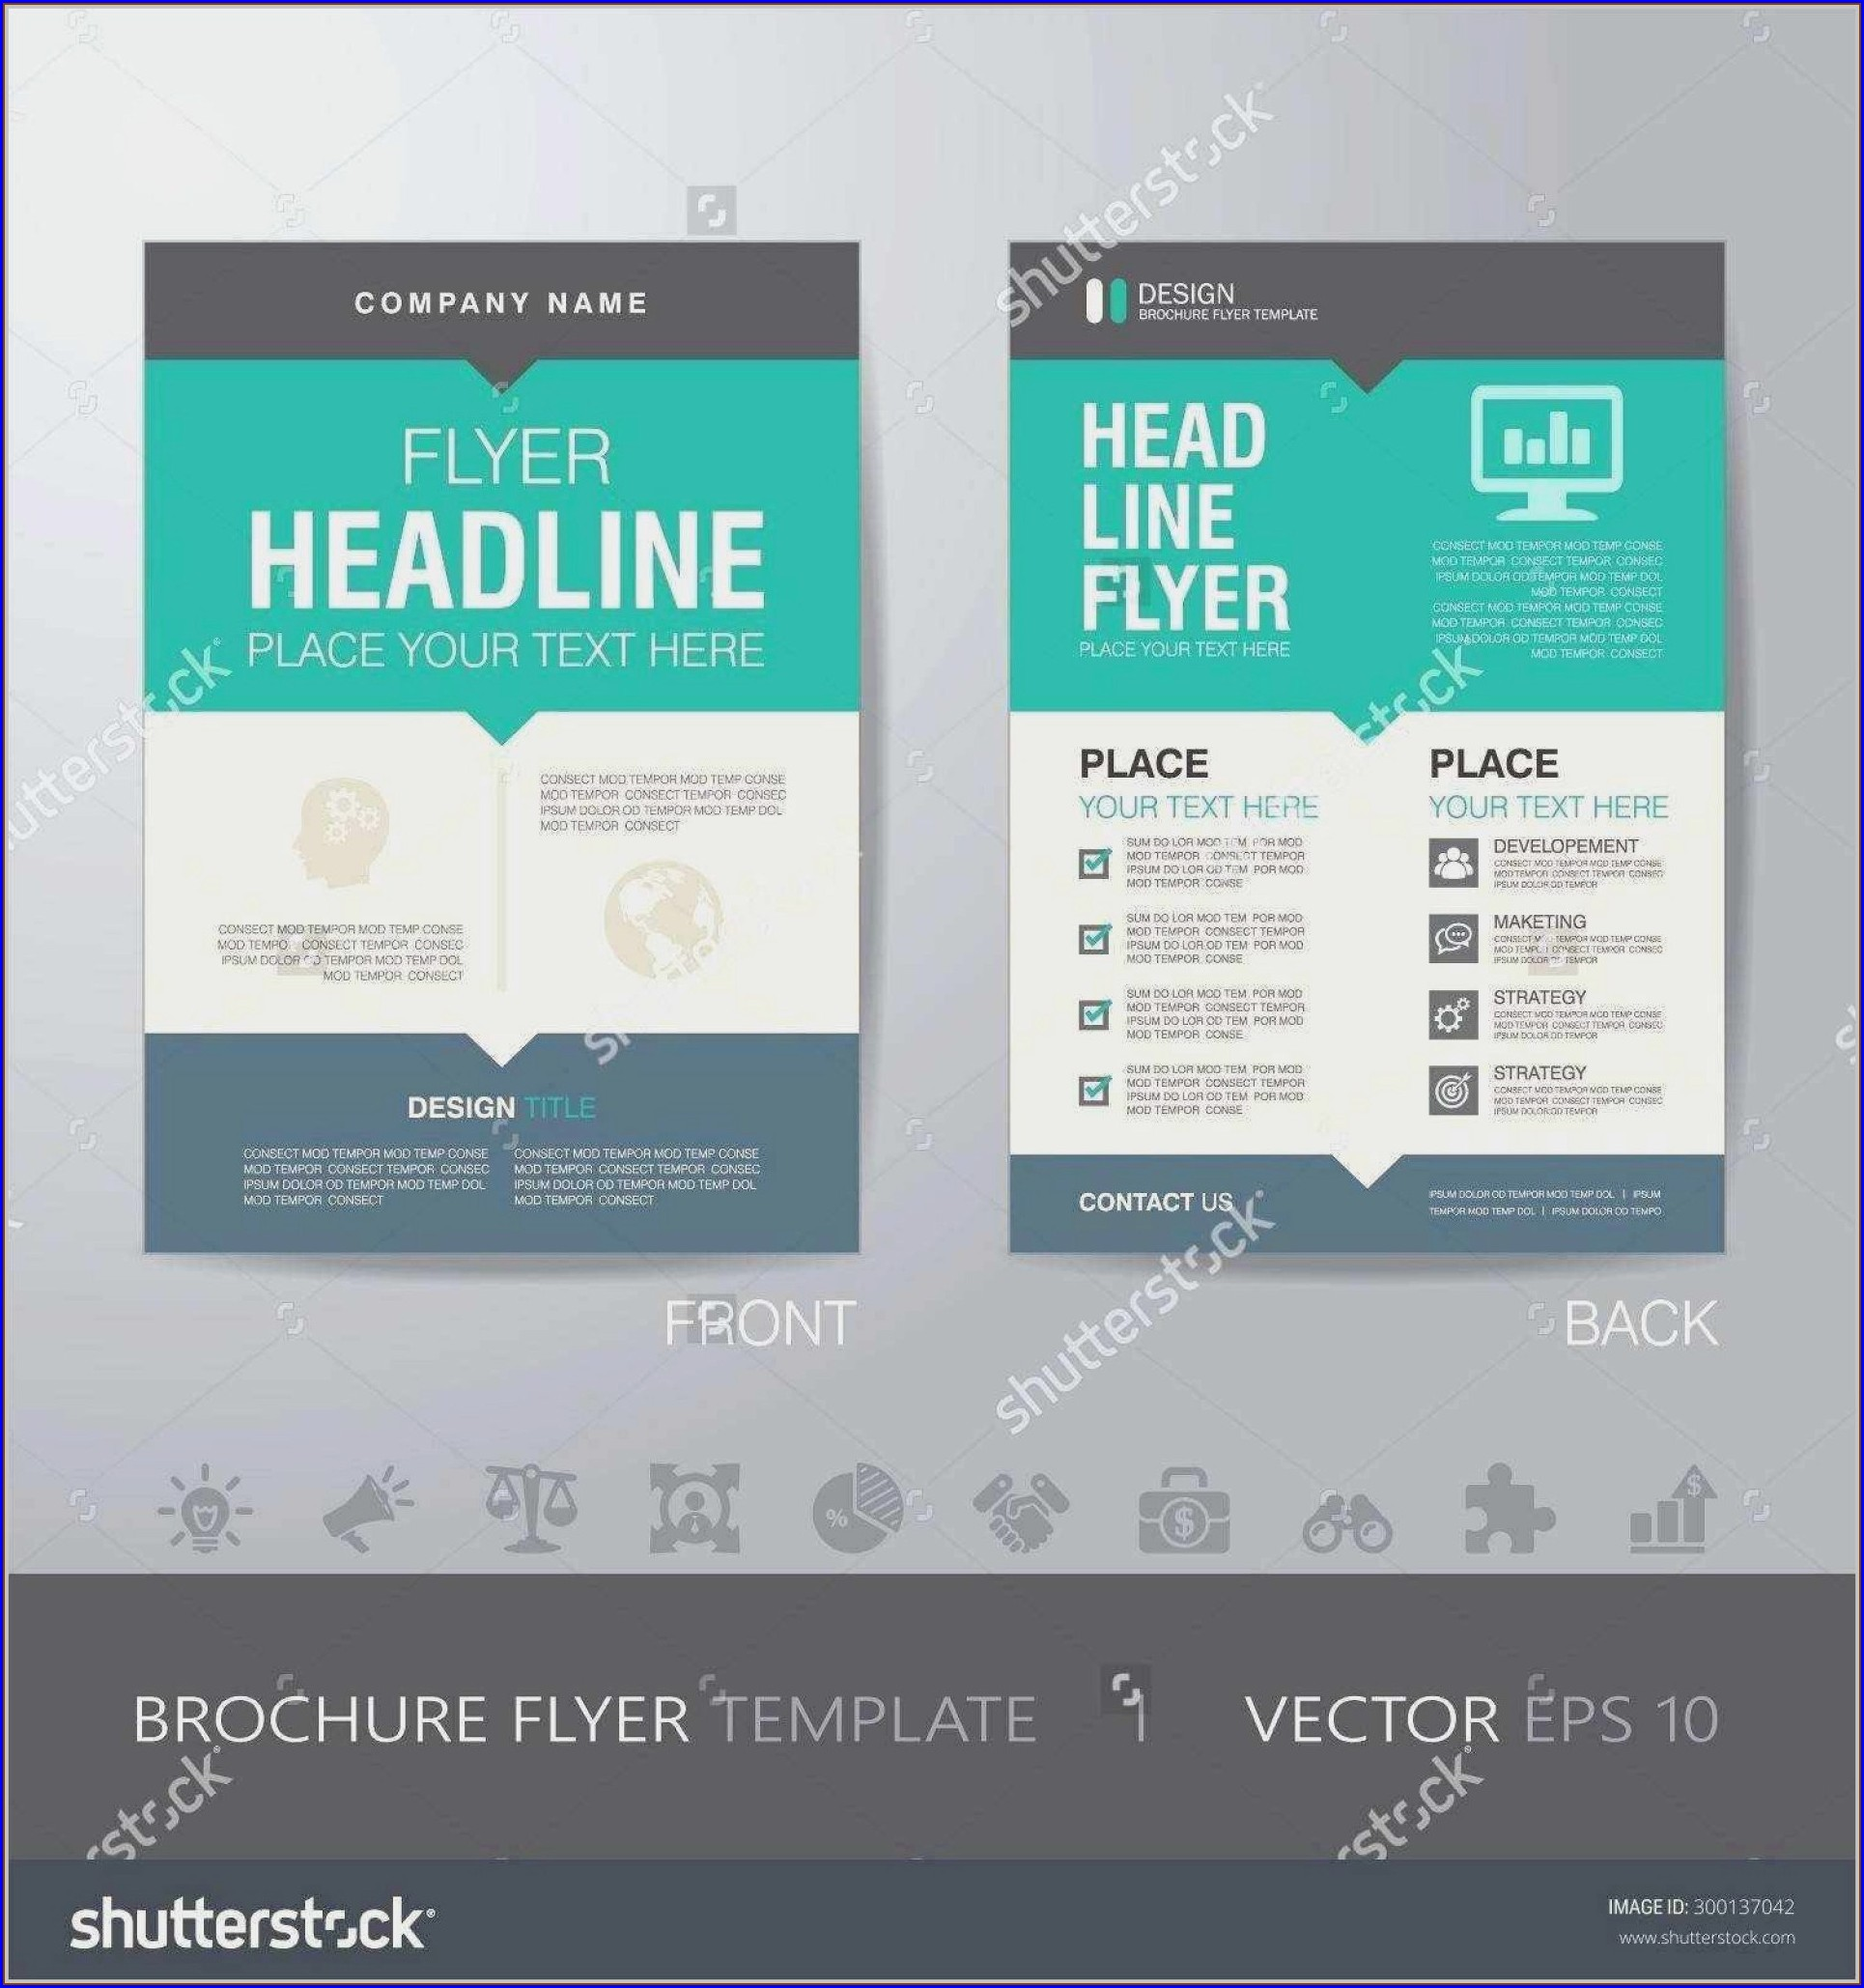 Free Microsoft Publisher Resume Templates